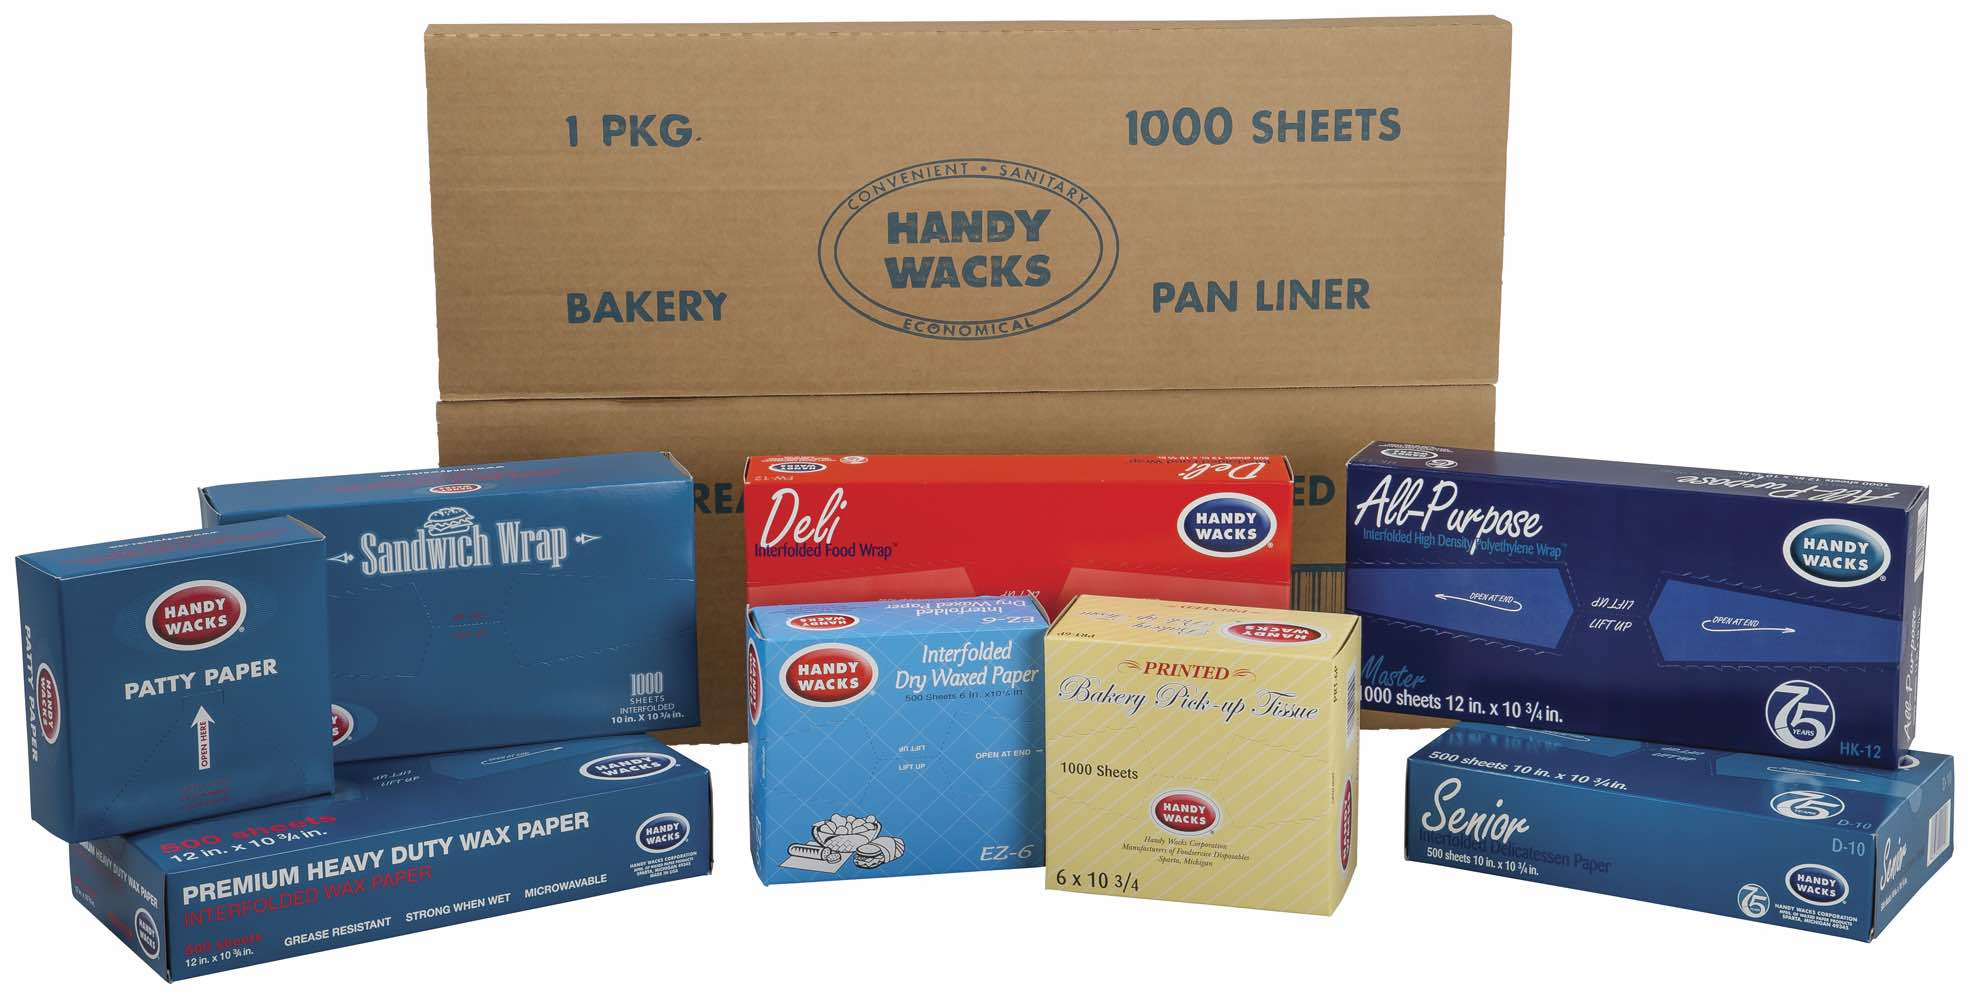 handy wacks wax paper products